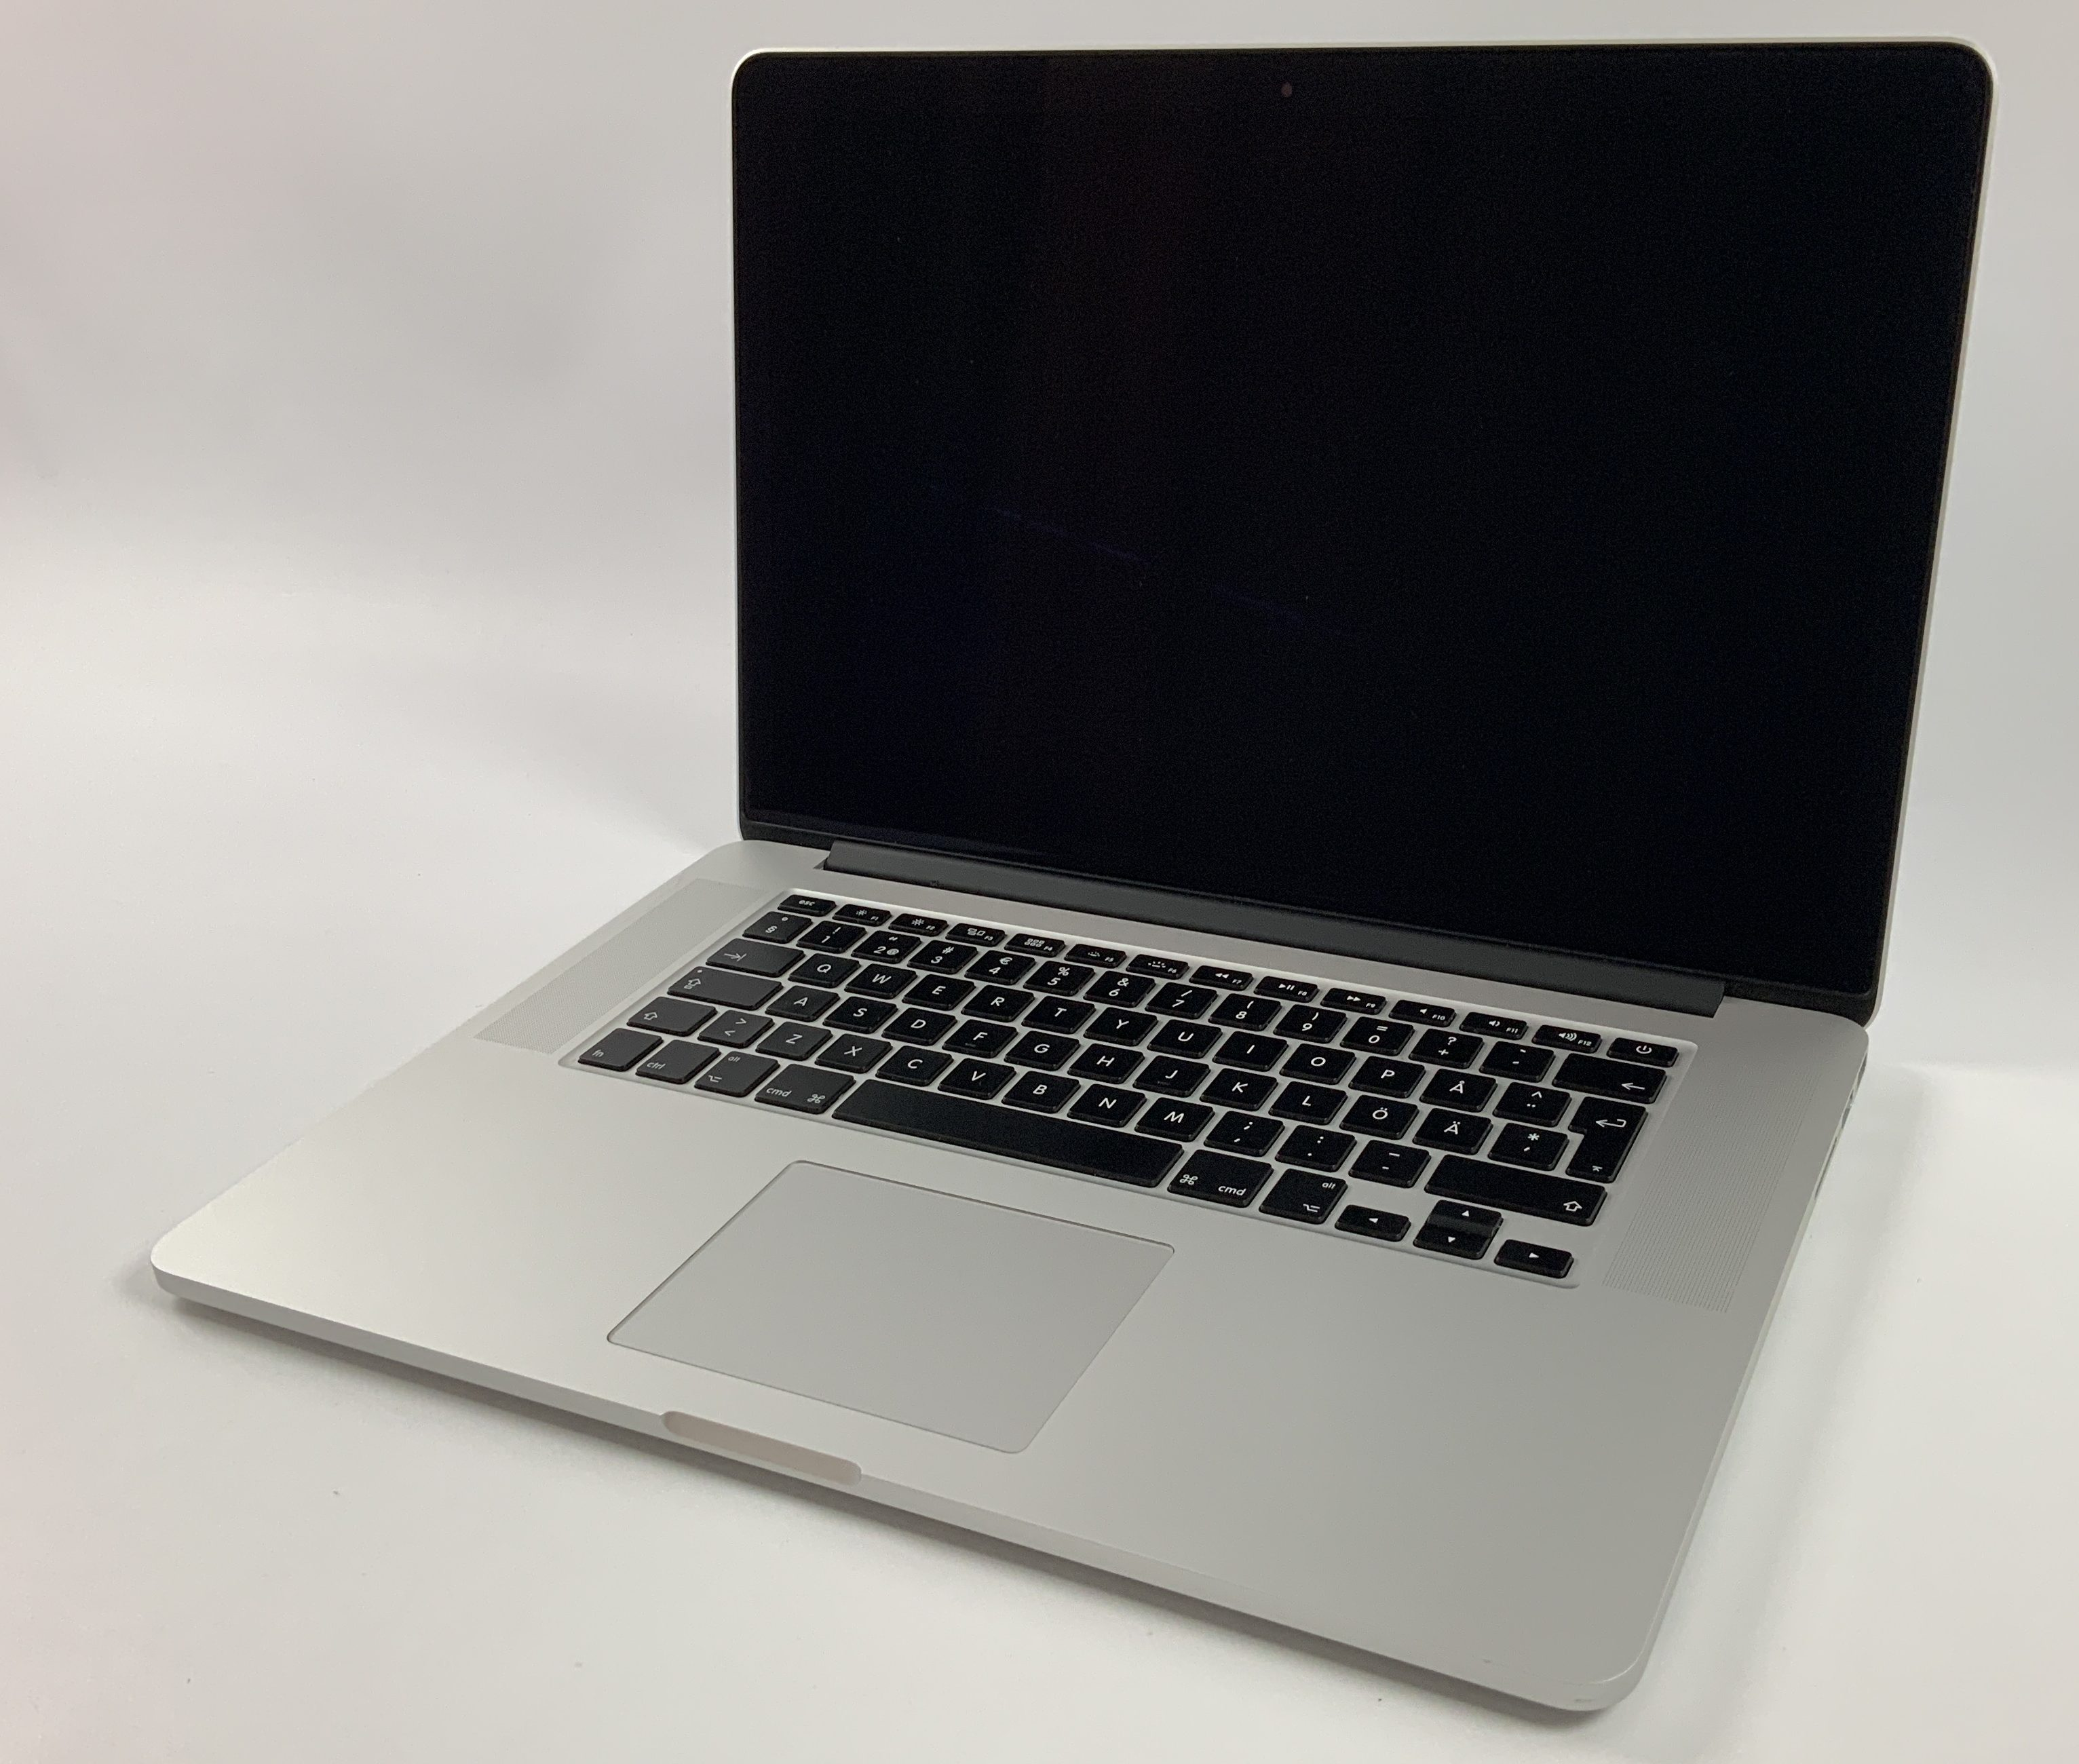 "MacBook Pro Retina 15"" Mid 2015 (Intel Quad-Core i7 2.2 GHz 16 GB RAM 1 TB SSD), Intel Quad-Core i7 2.2 GHz, 16 GB RAM, 1 TB SSD, obraz 1"